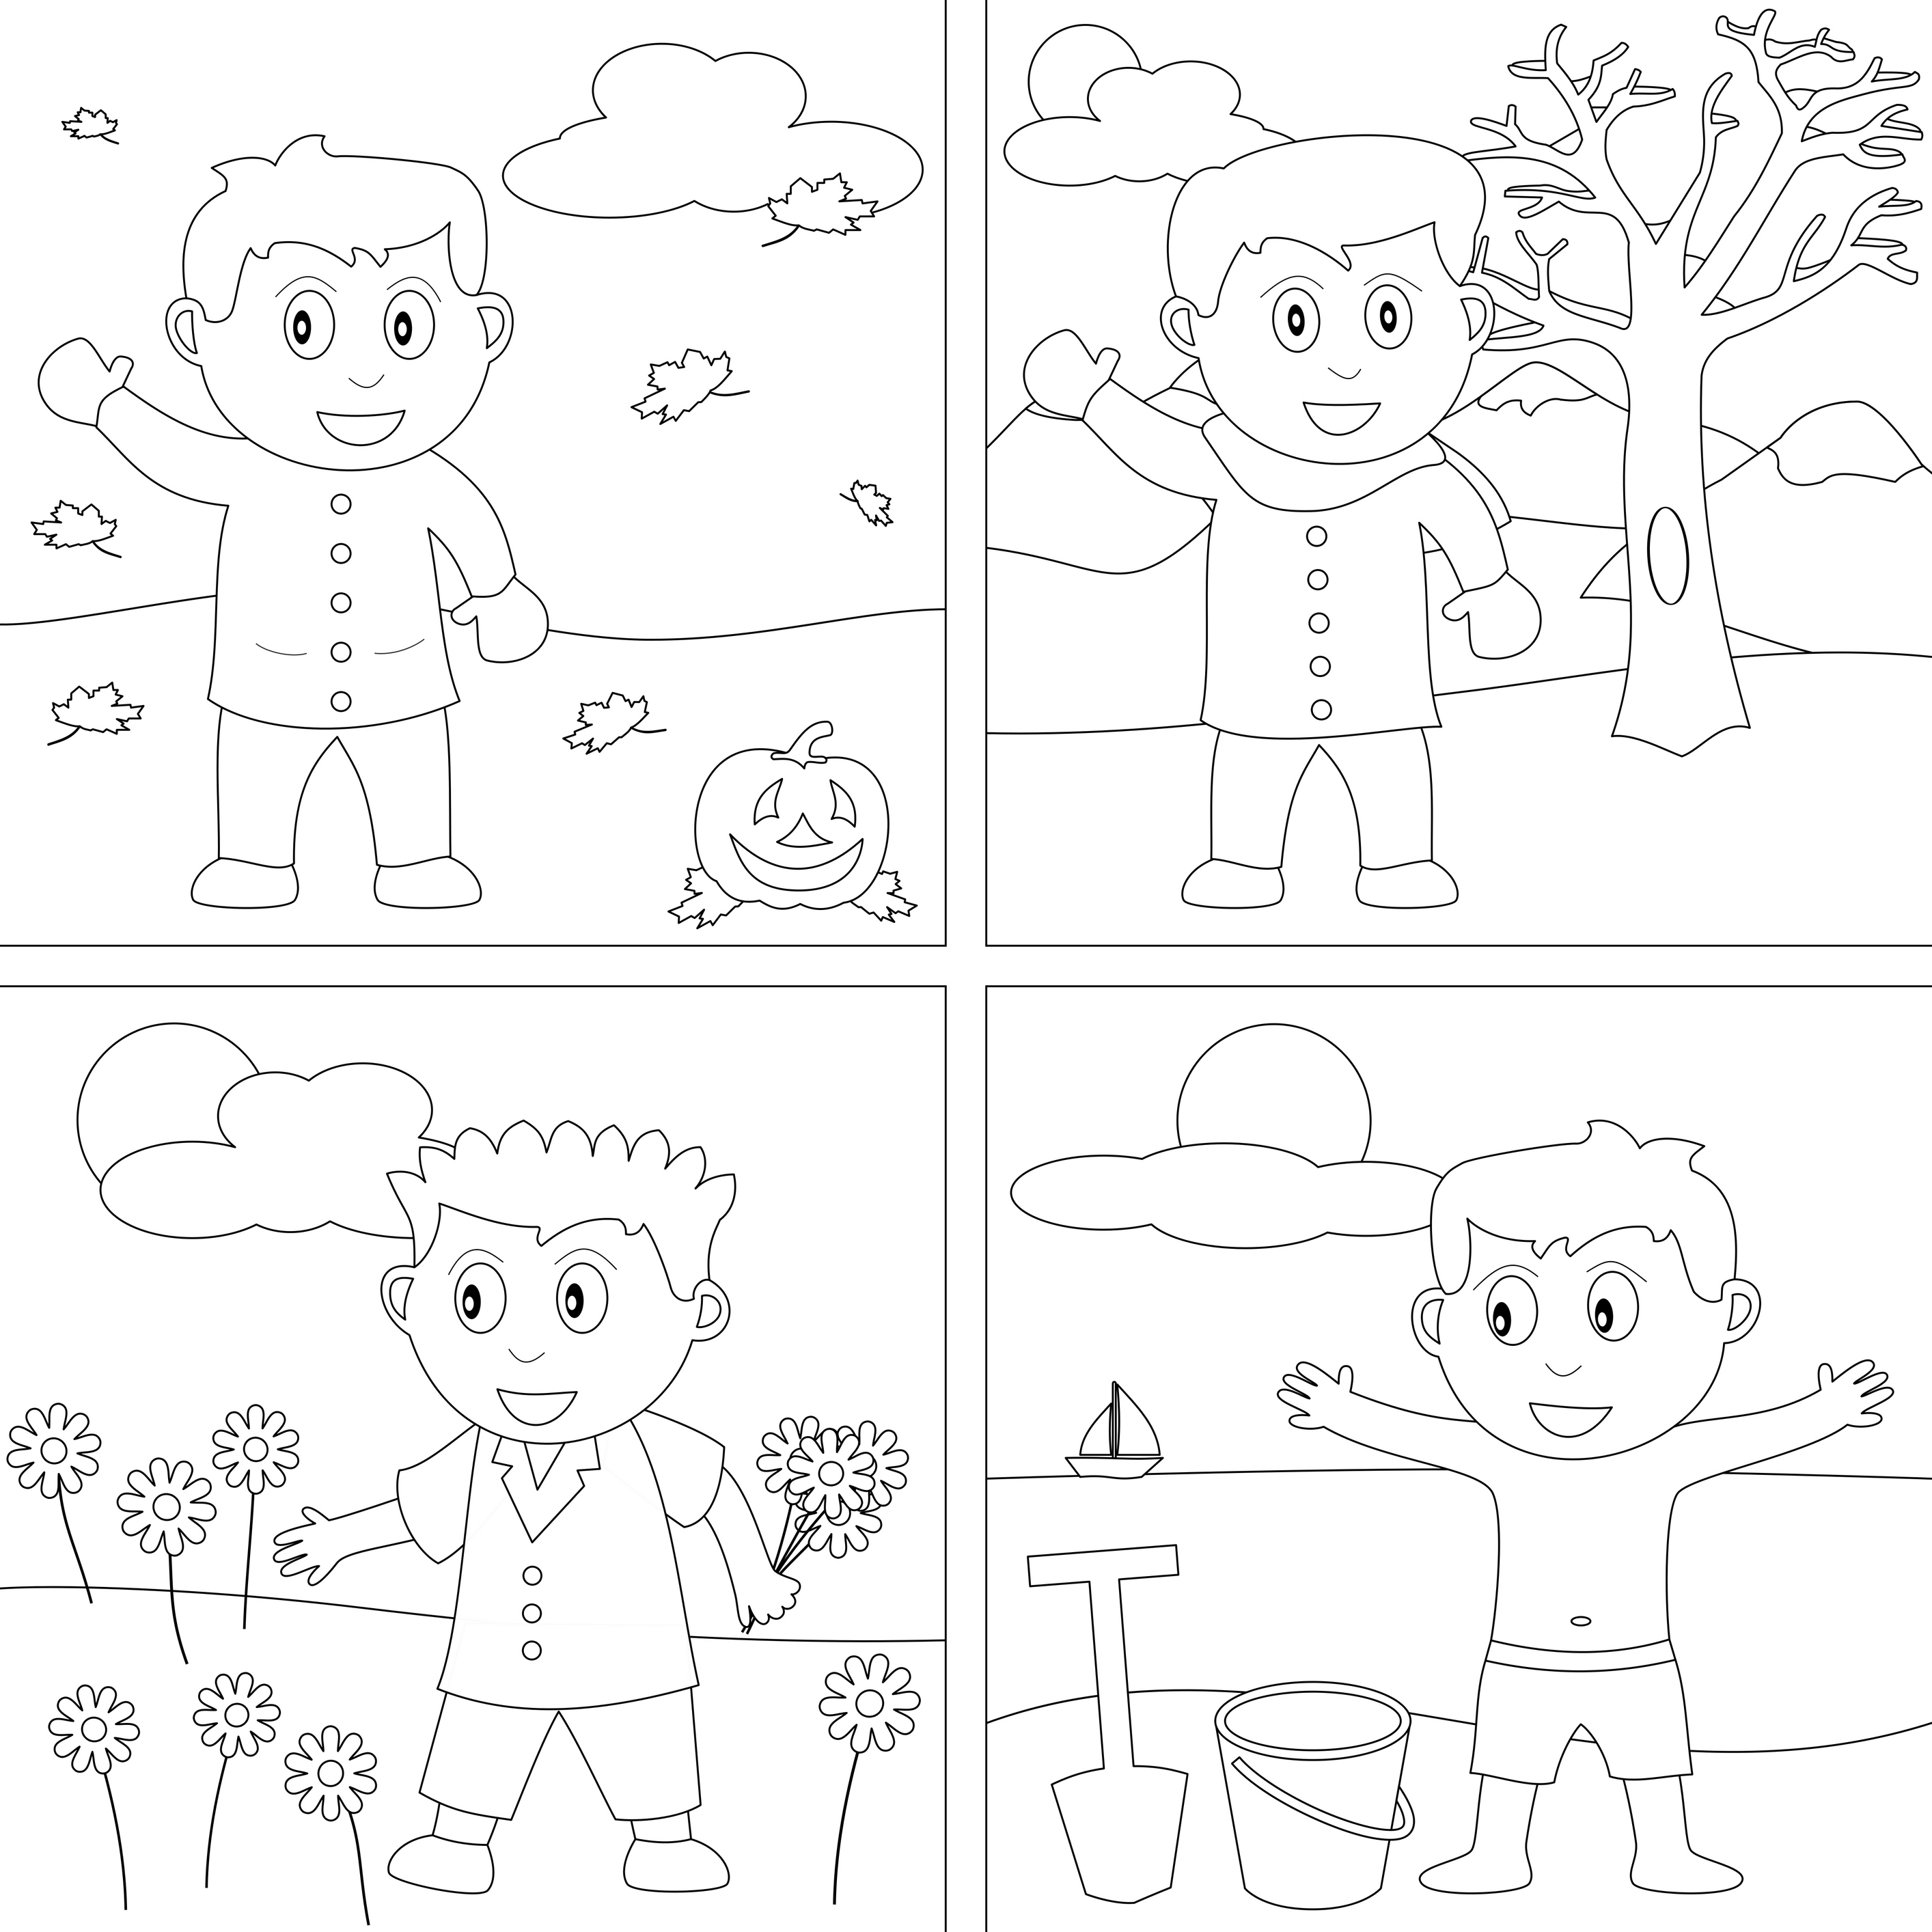 Hot And Cold Coloring Pages At Getcolorings